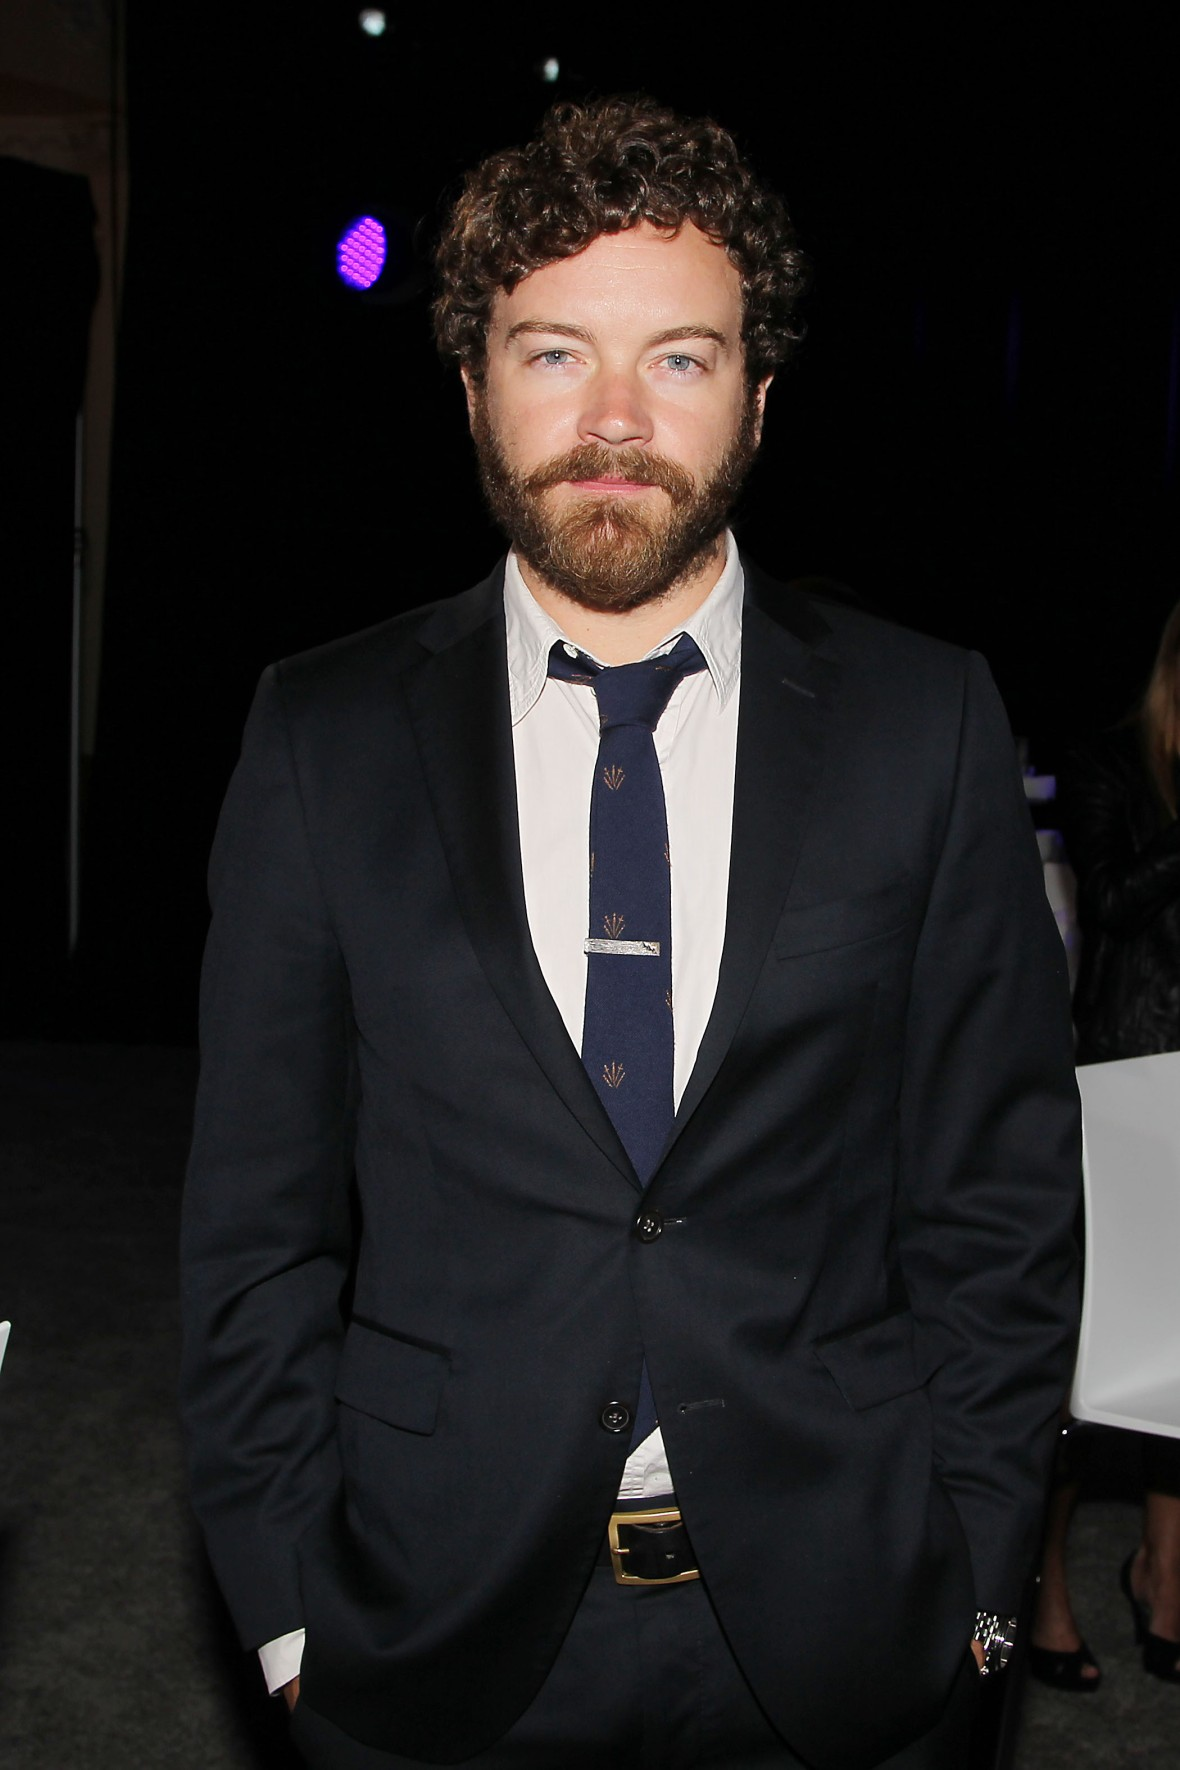 Danny Masterson Charges Against Him